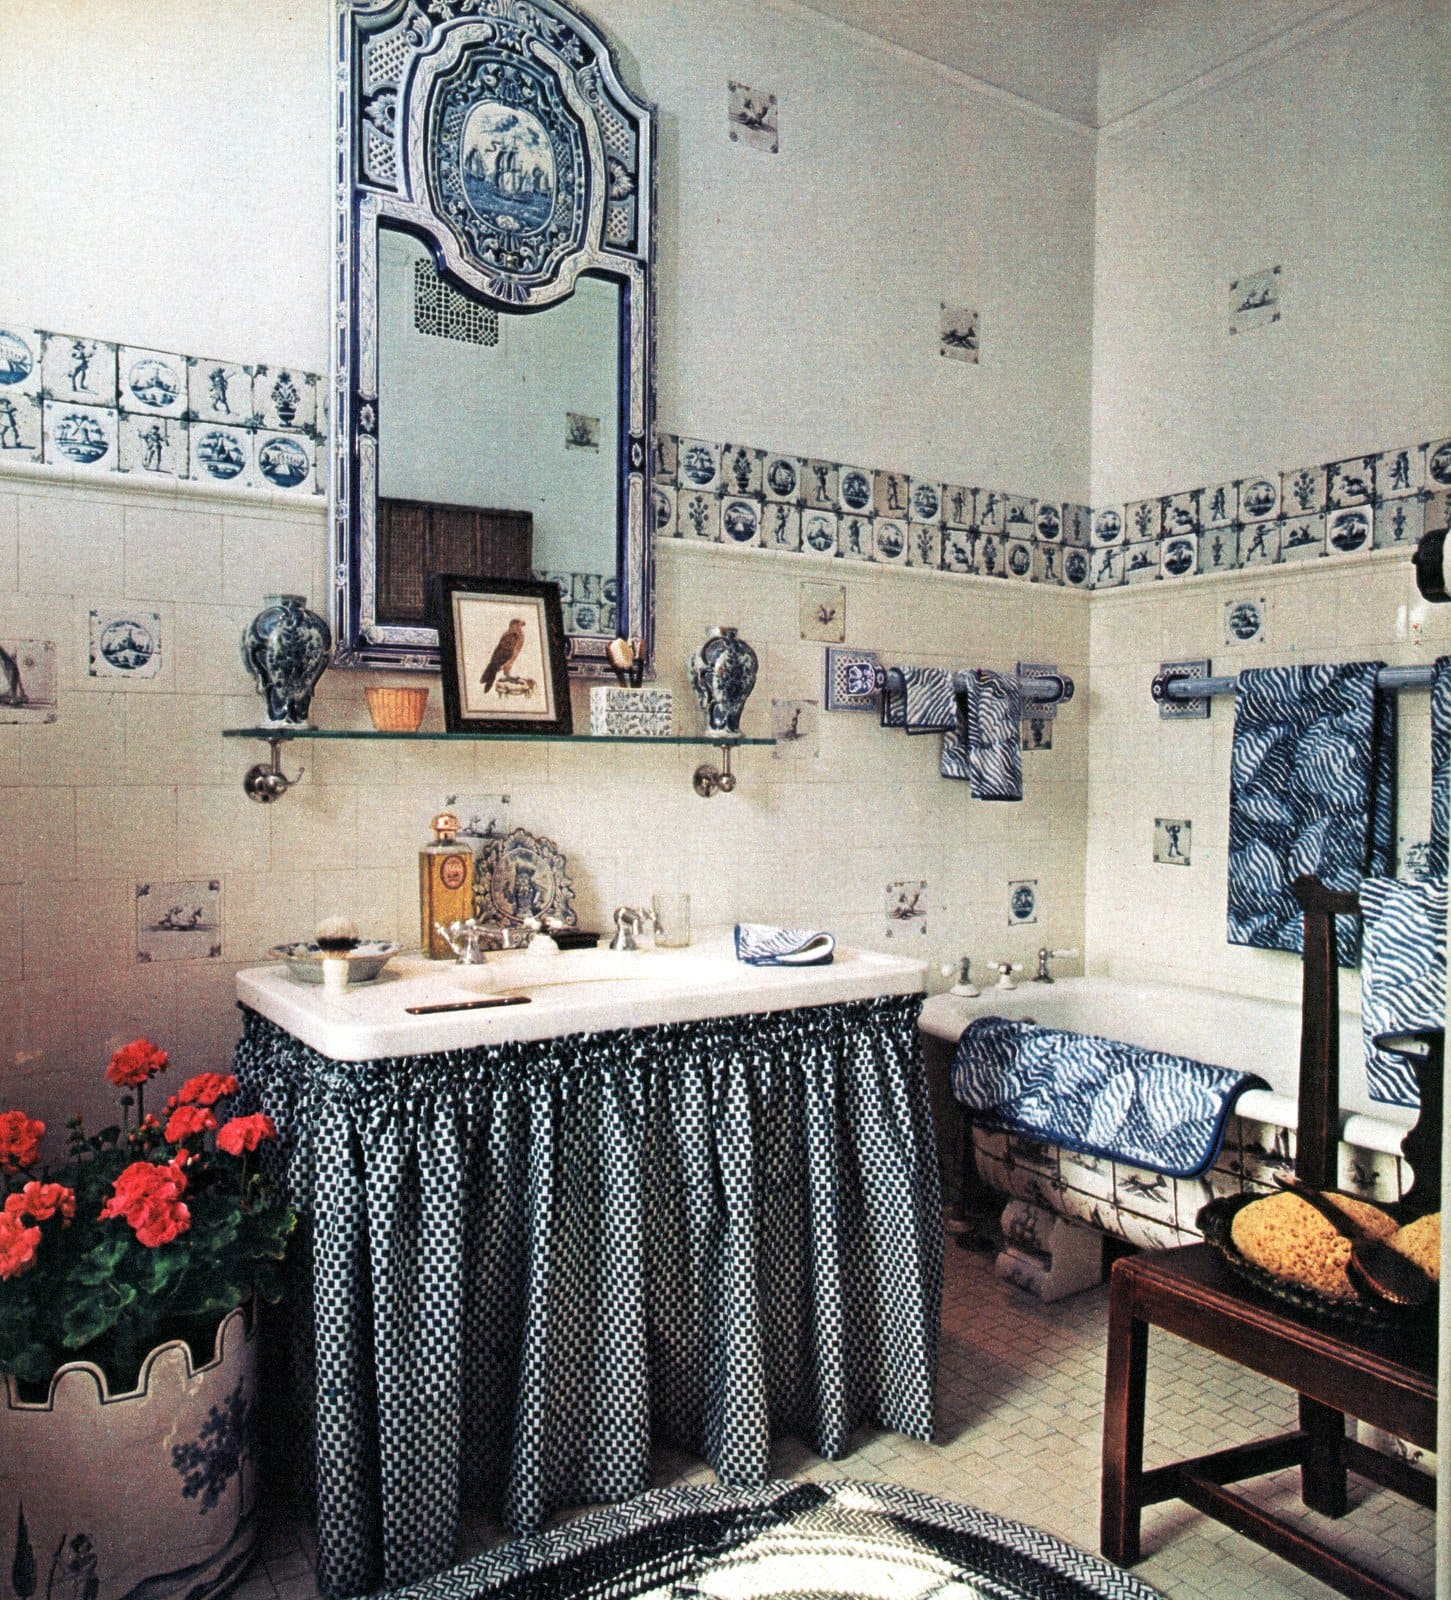 Bathroom decor inspired by a 18th century Delft tile medallion (1981)